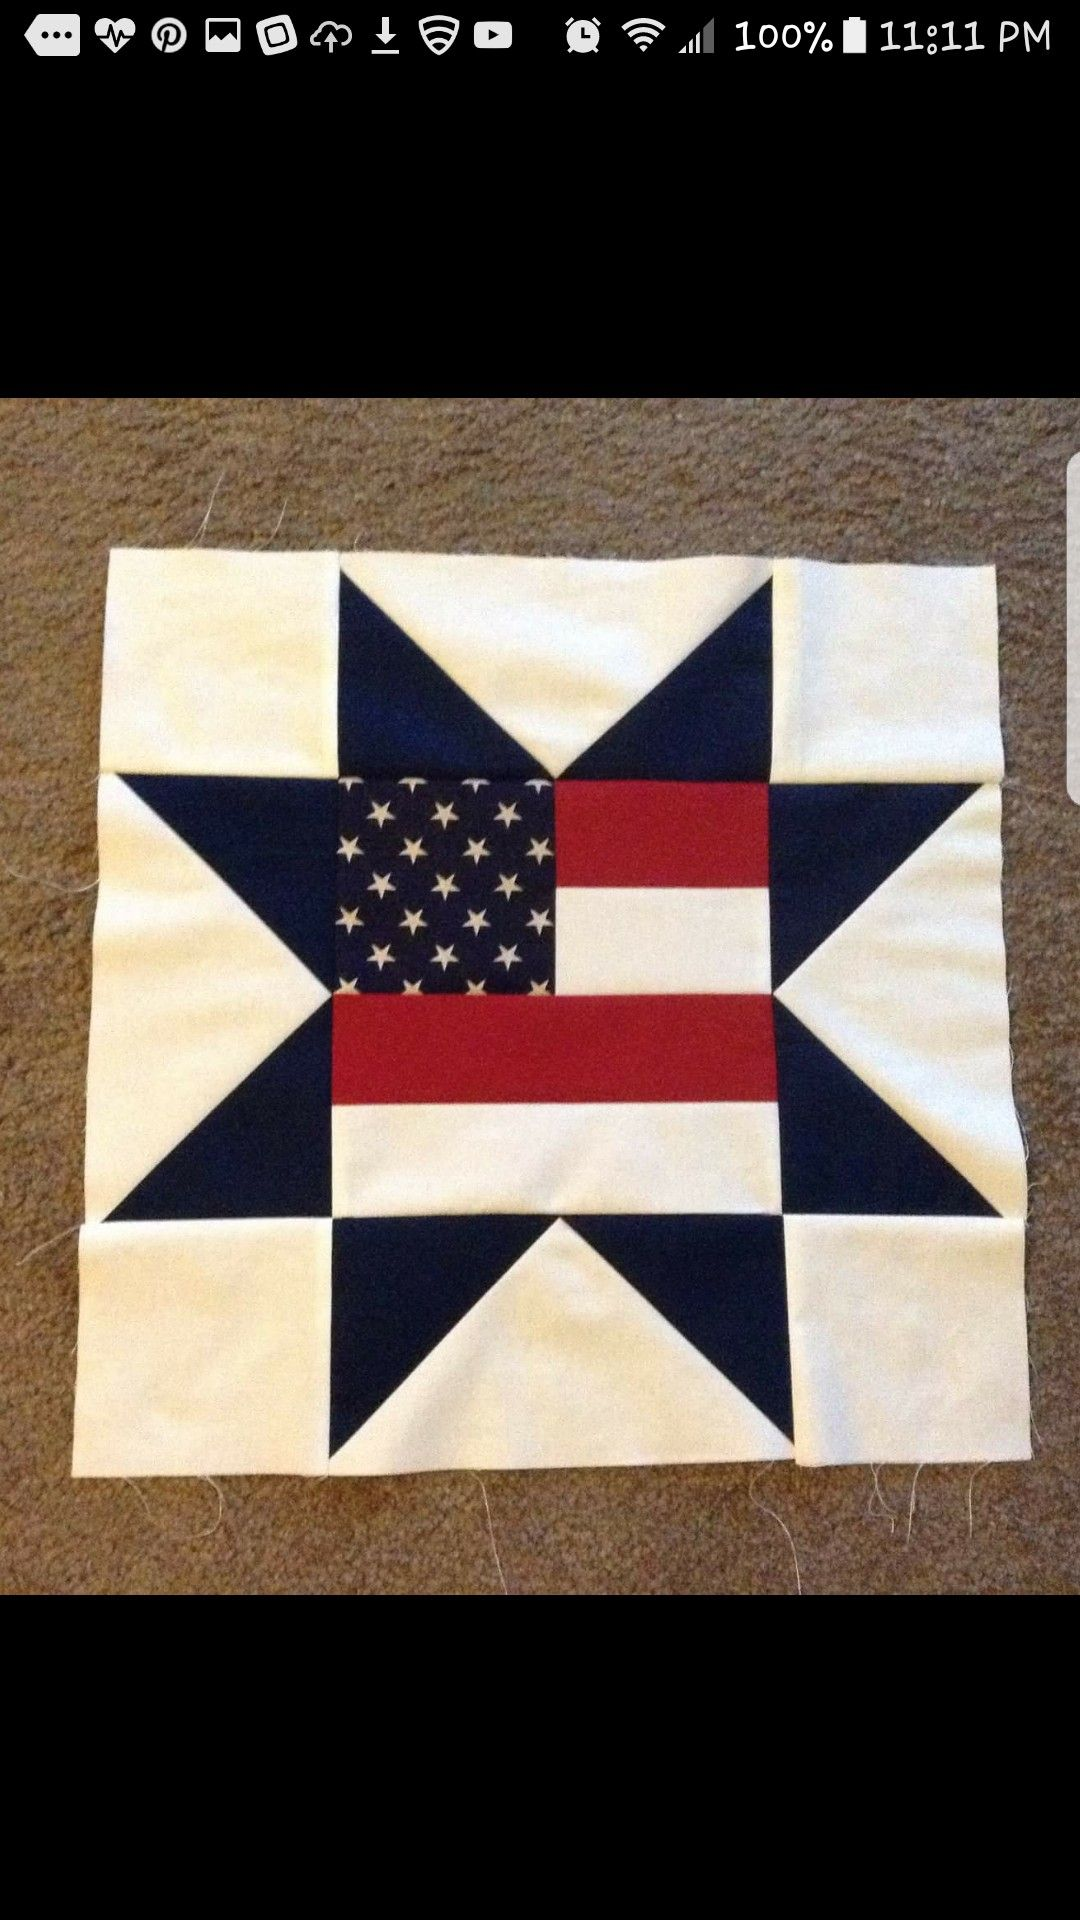 Pin By Miaty On Quilting Patriotic Barn Quilt Patterns Painted Barn Quilts Barn Quilts